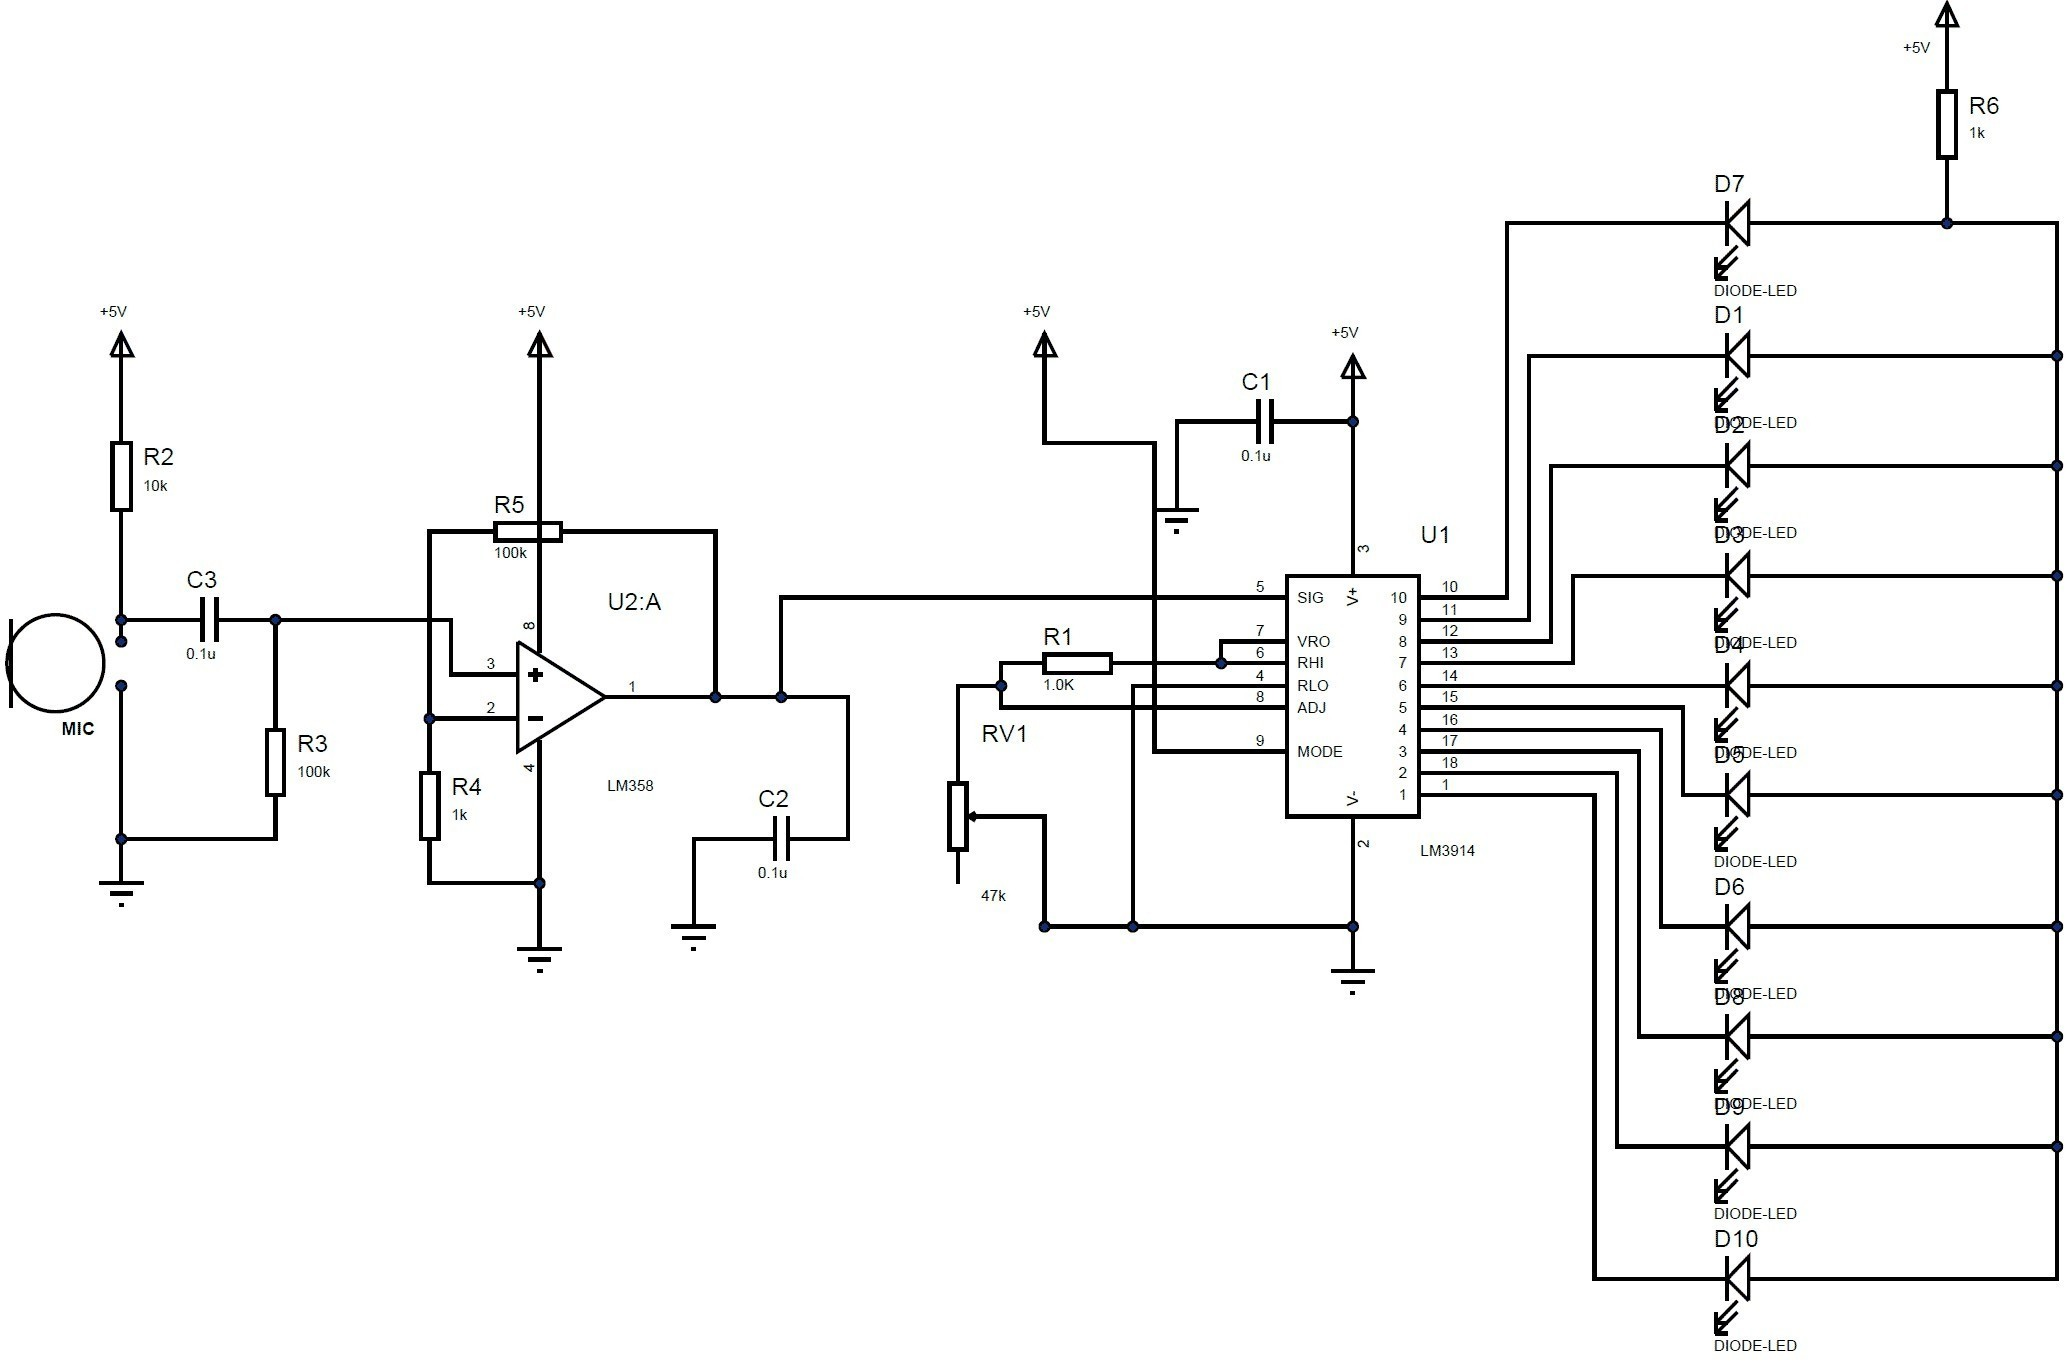 Wiring Diagram For Lights And Switches New Peerless Light Switch Wiring Diagram Multiple Lights Image 0d